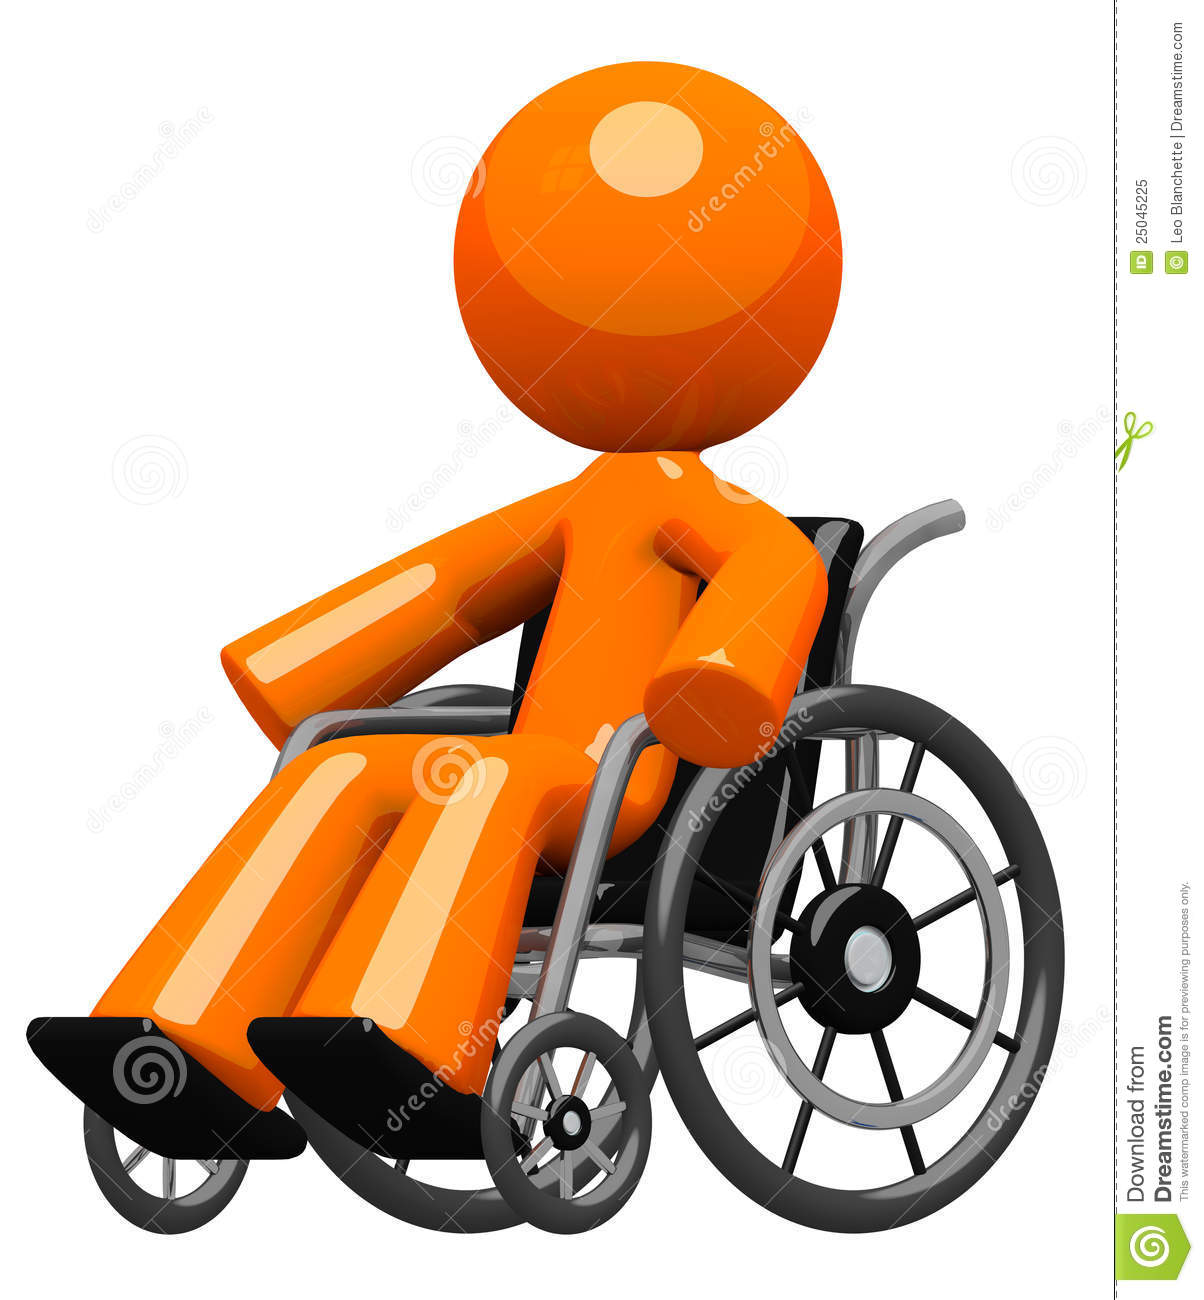 Orange Man In Wheel Chair Disabled Or Impaired Stock Illustration ...